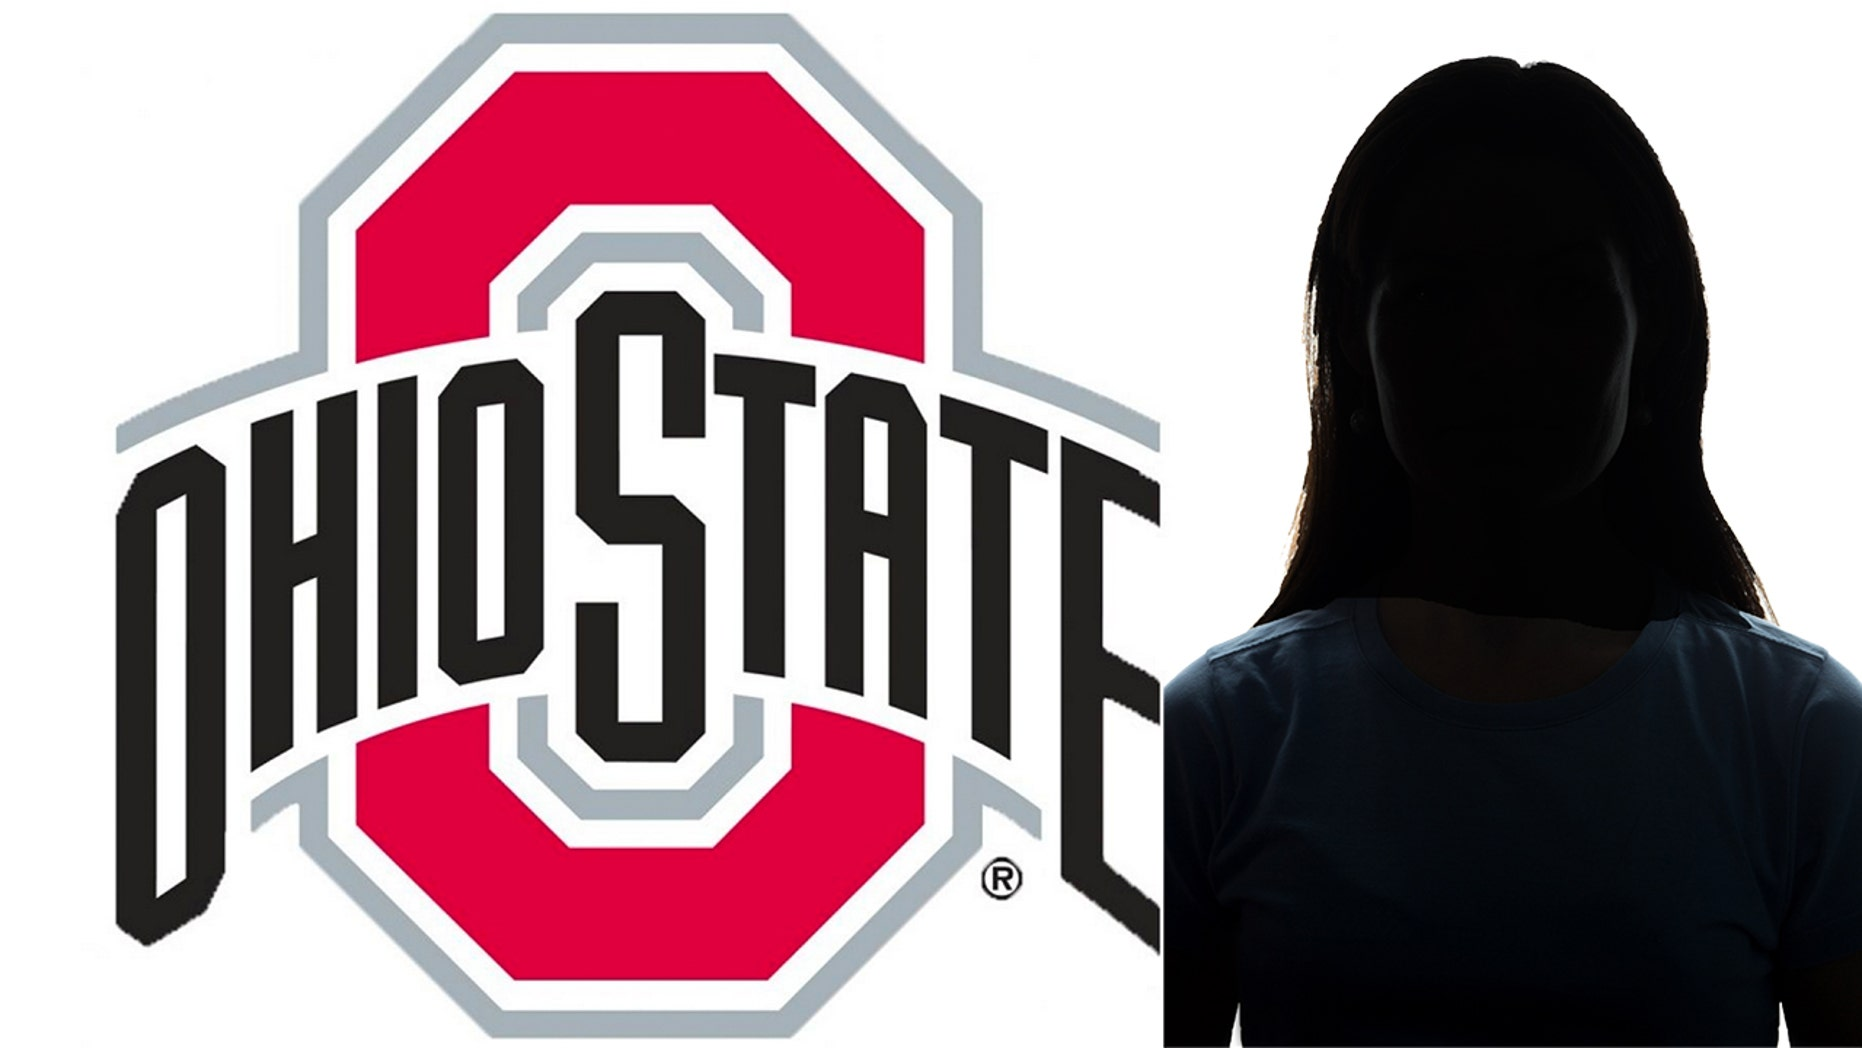 A federal judge blocked Ohio State University from expelling a female student accused of sexual misconduct.